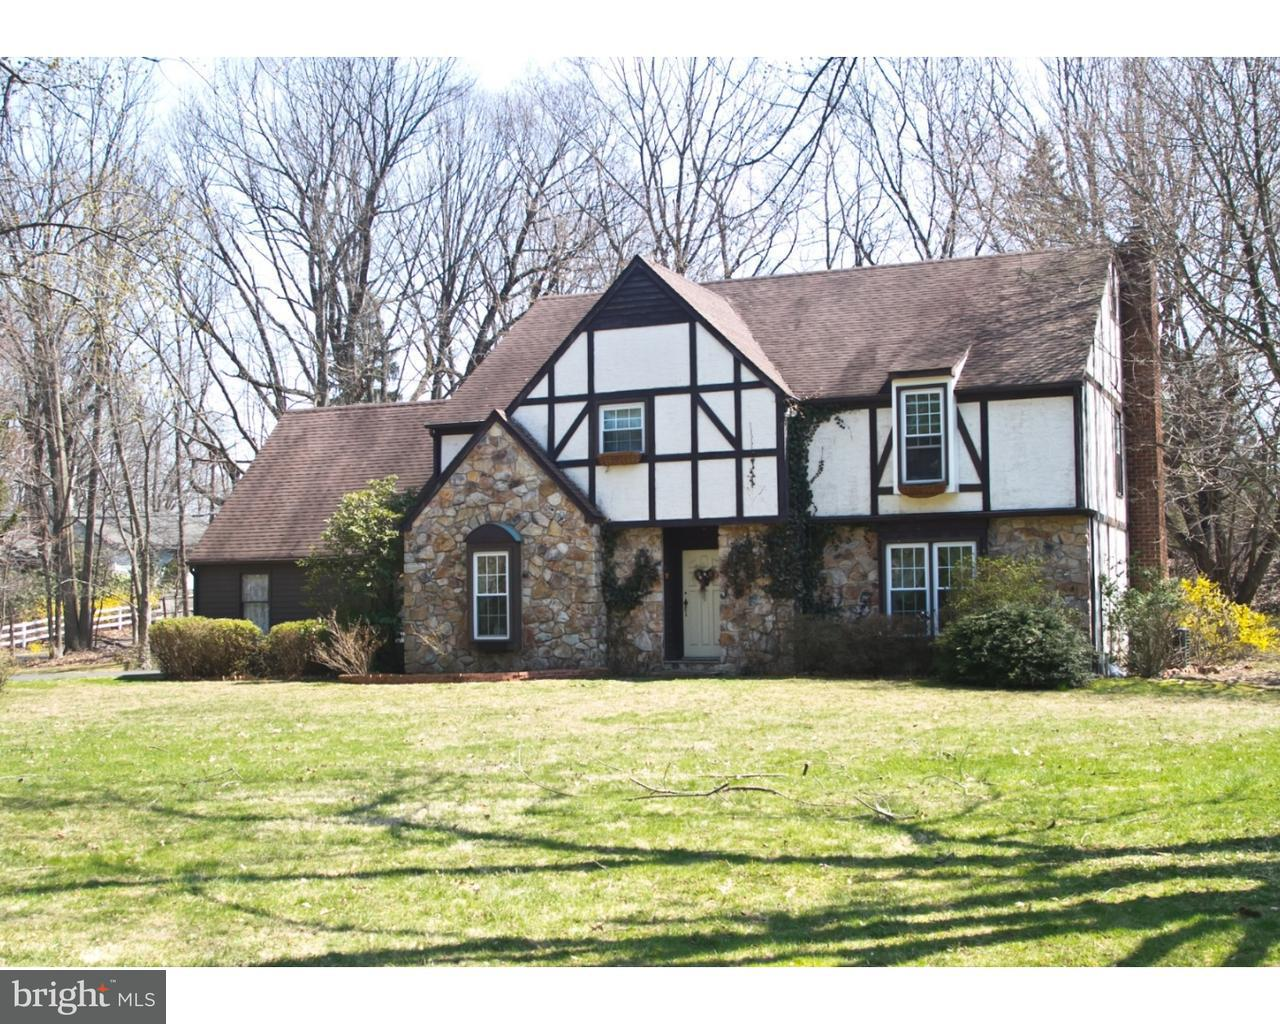 6176 Hidden Valley Drive Doylestown, PA 18902